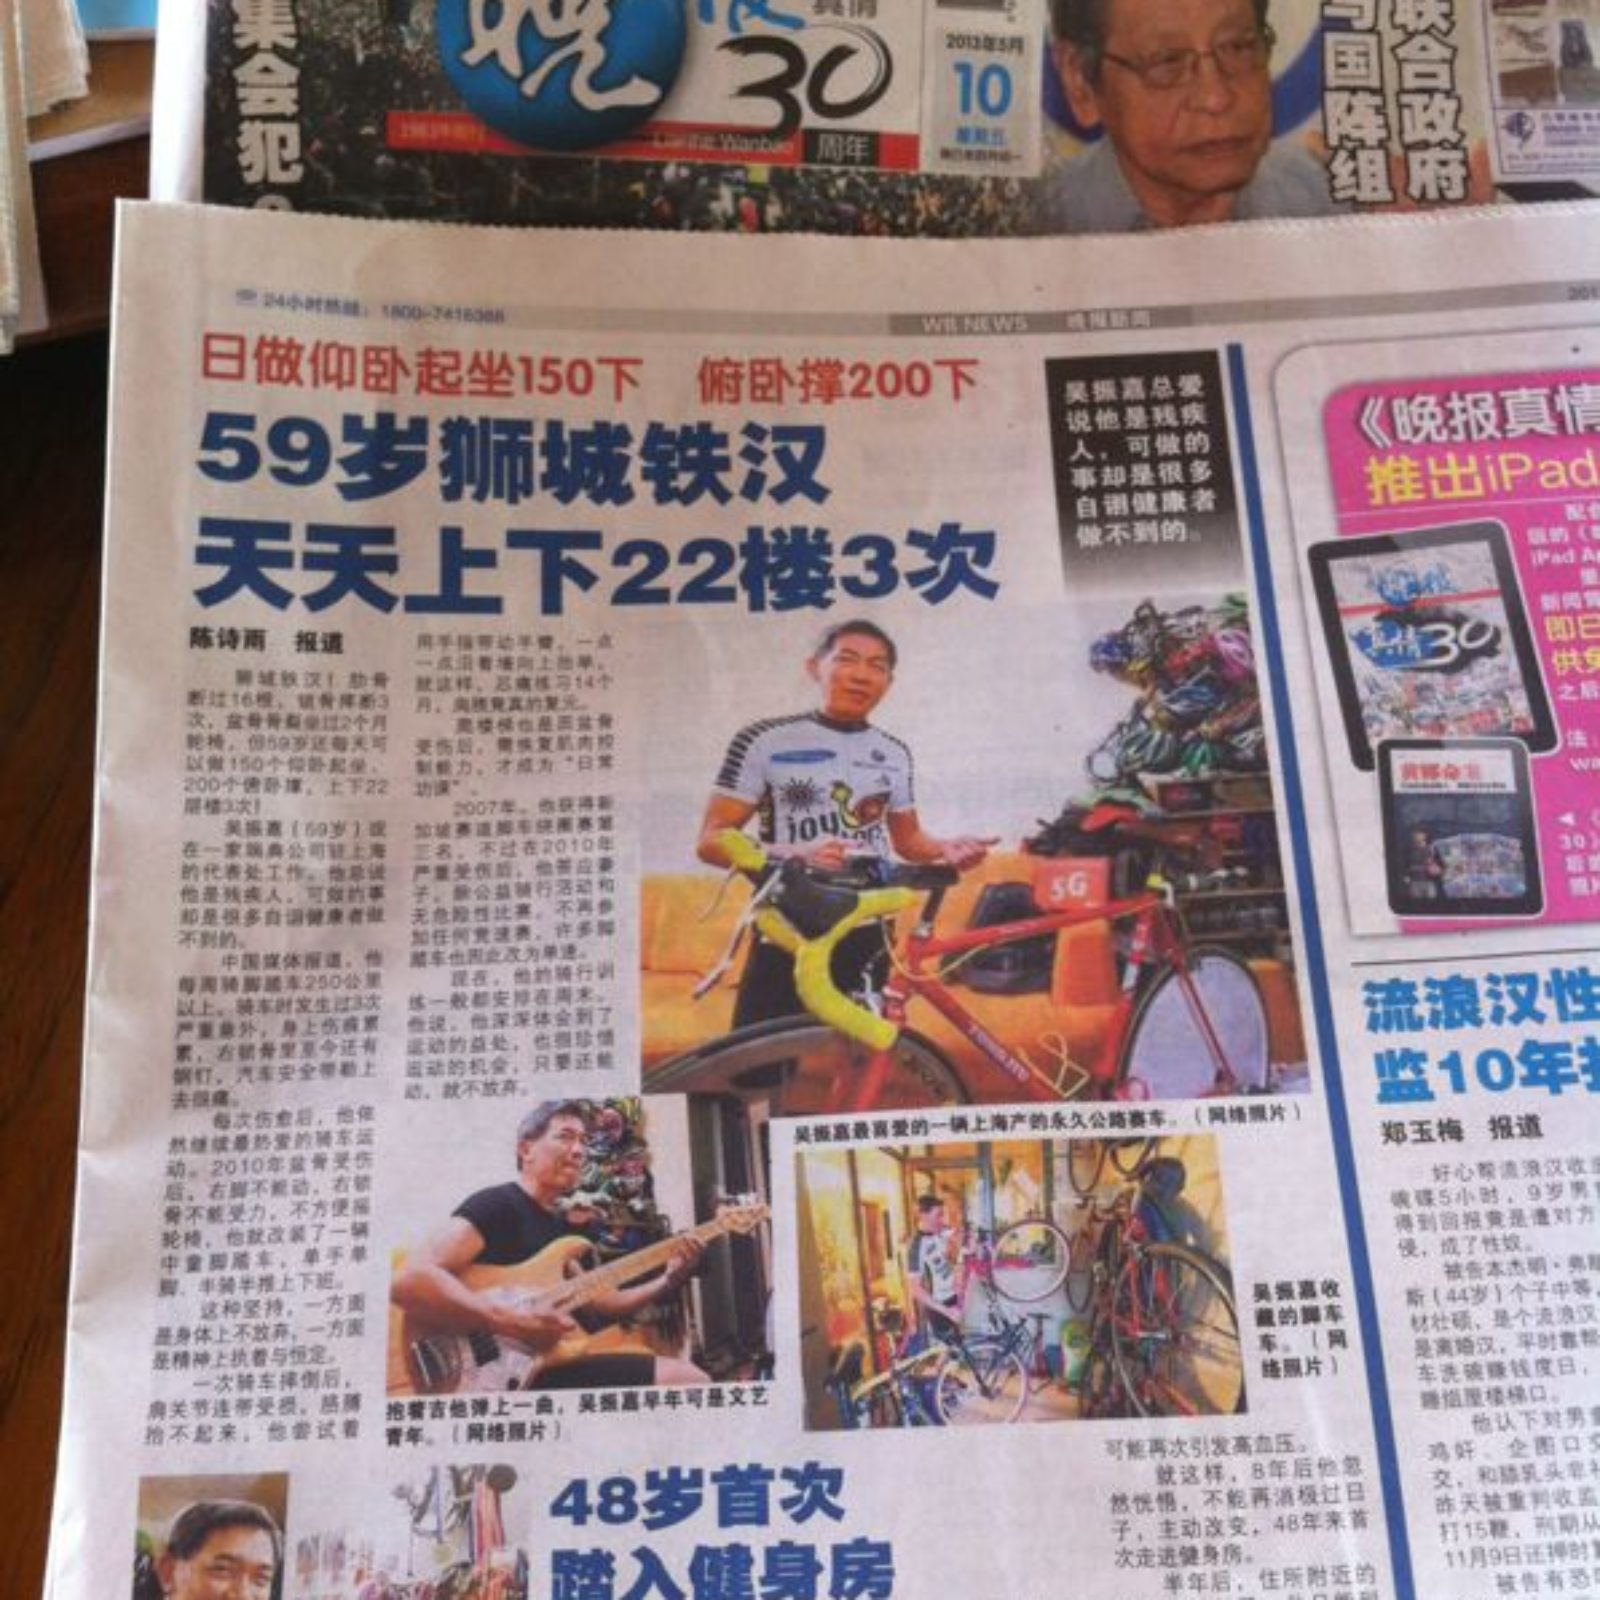 LianHeWanBao, May 11, 2013